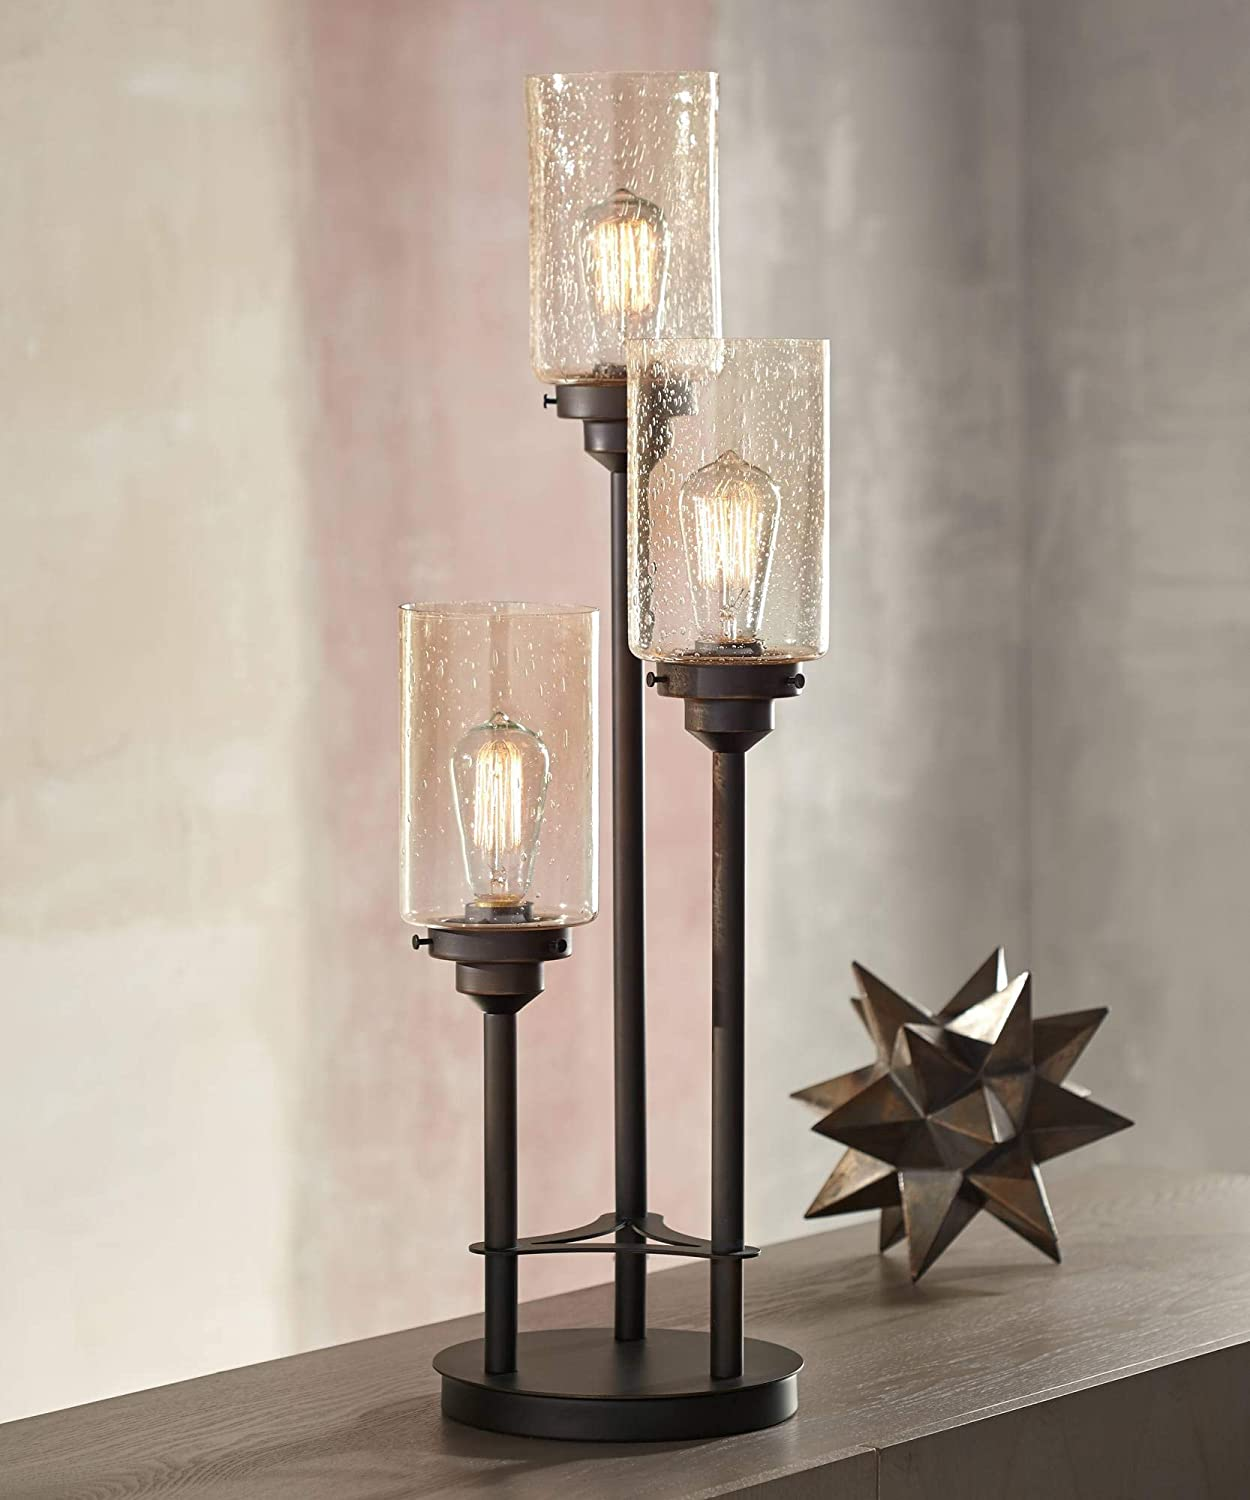 Libby Modern Industrial Console Table Lamp Bronze 3-Light Amber Seedy Glass Shade for Living Room Bedroom Office